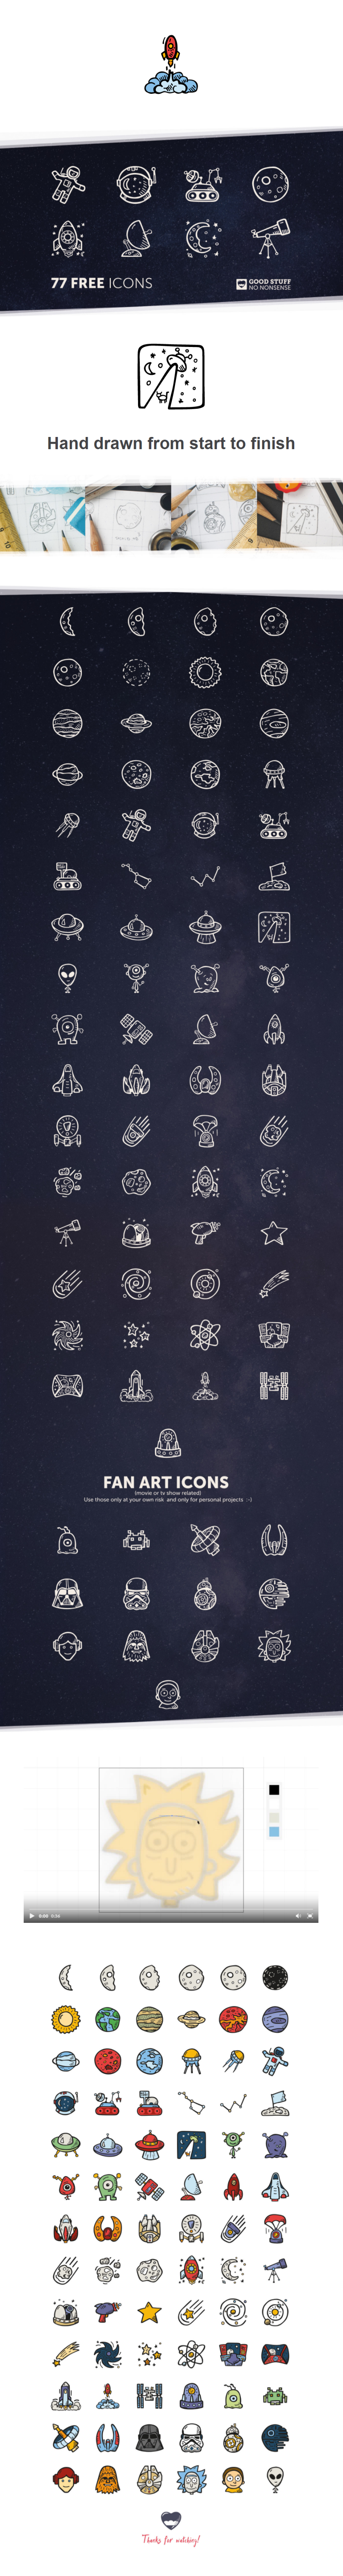 space-icon-pack-free